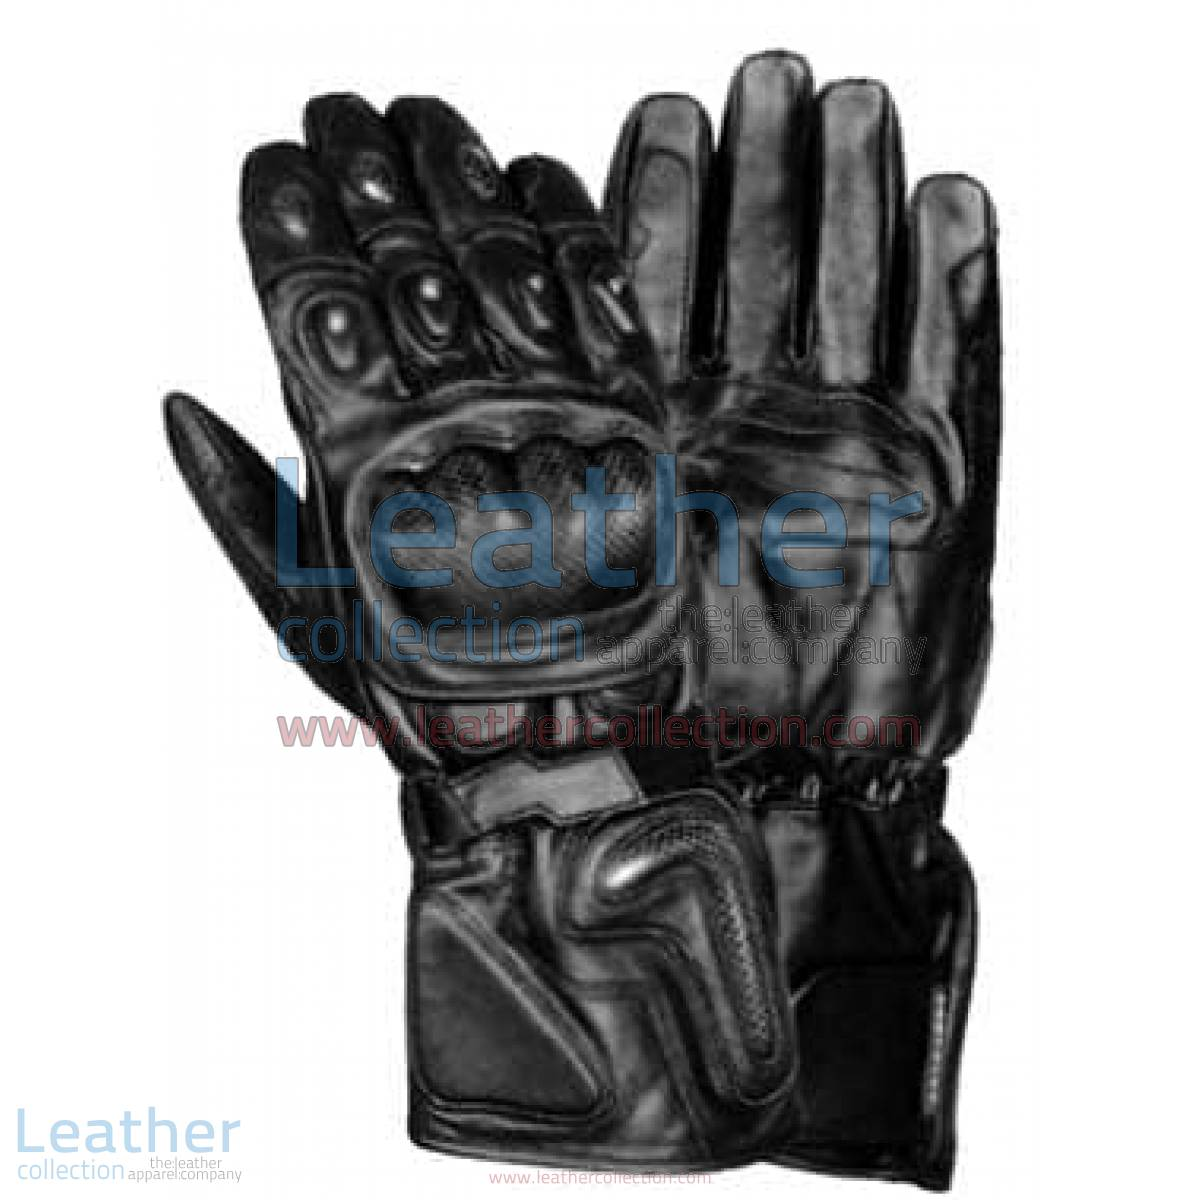 Silverstone Motorbike Riding Gloves | motorcycle riding gloves